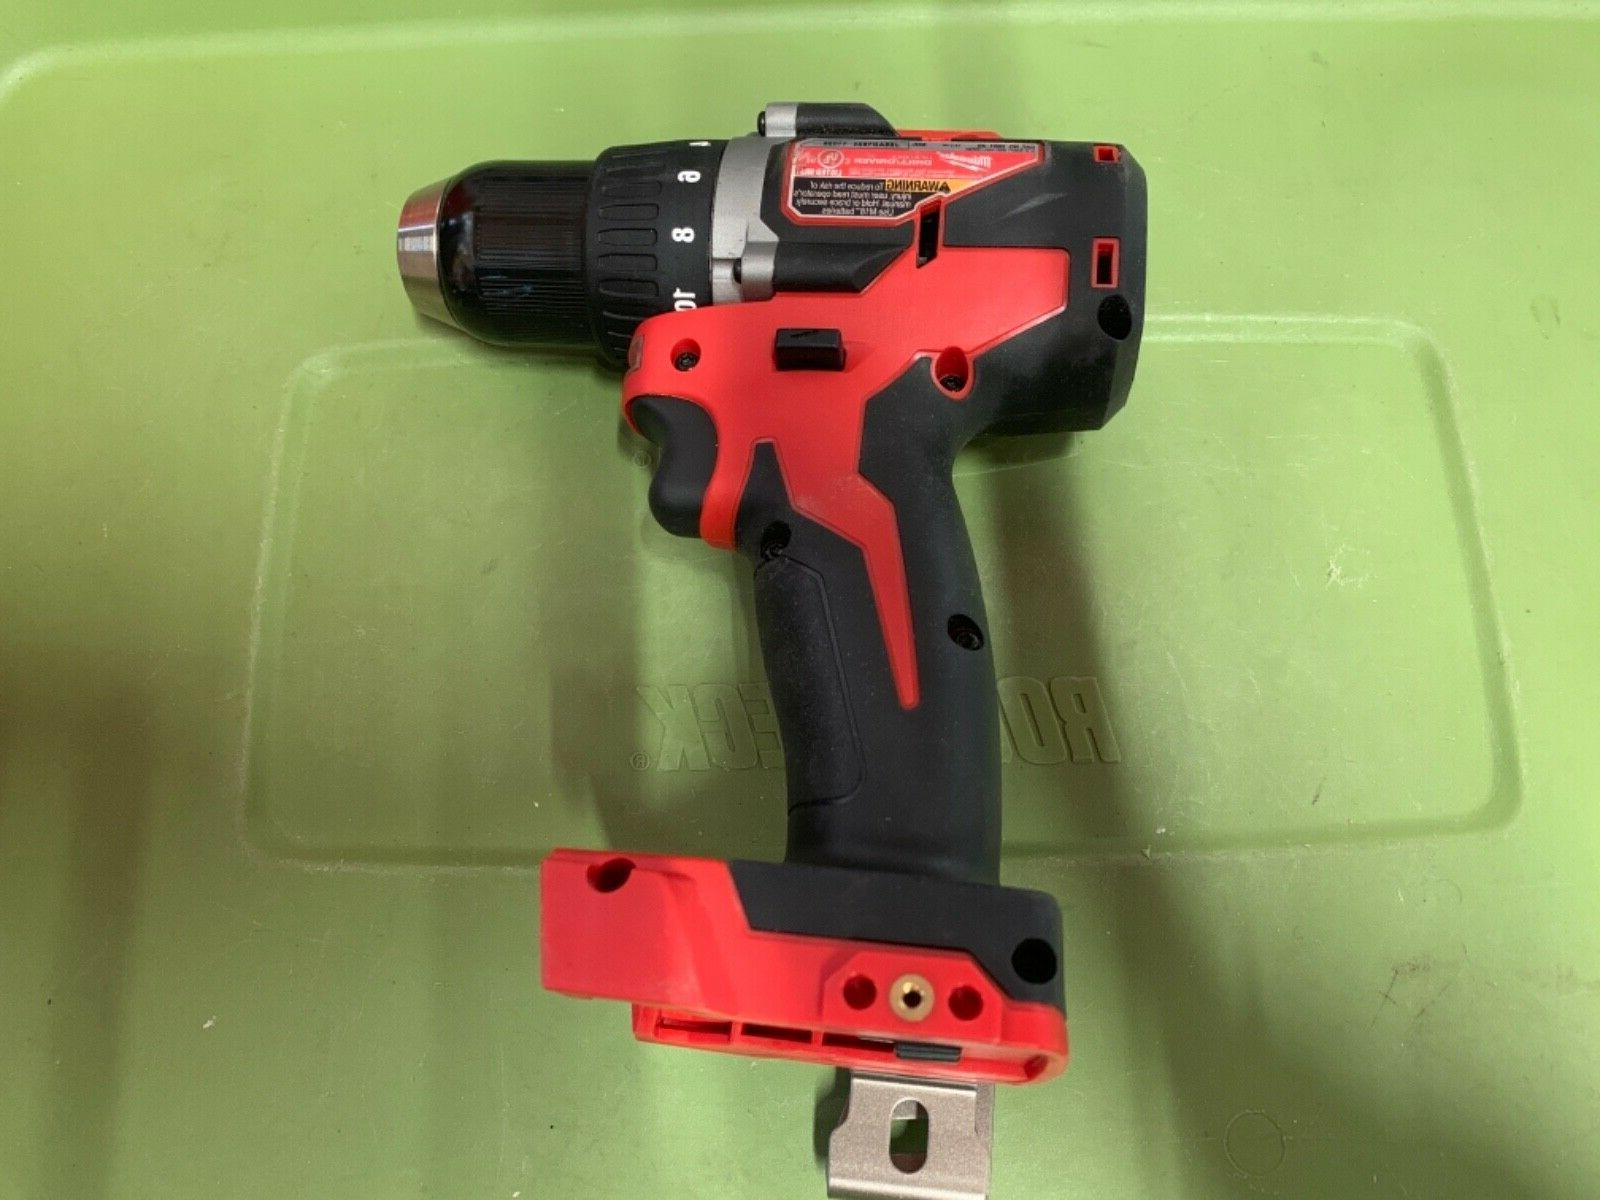 Milwaukee 2801-20 Compact Brushless Drill Tool dated 2018